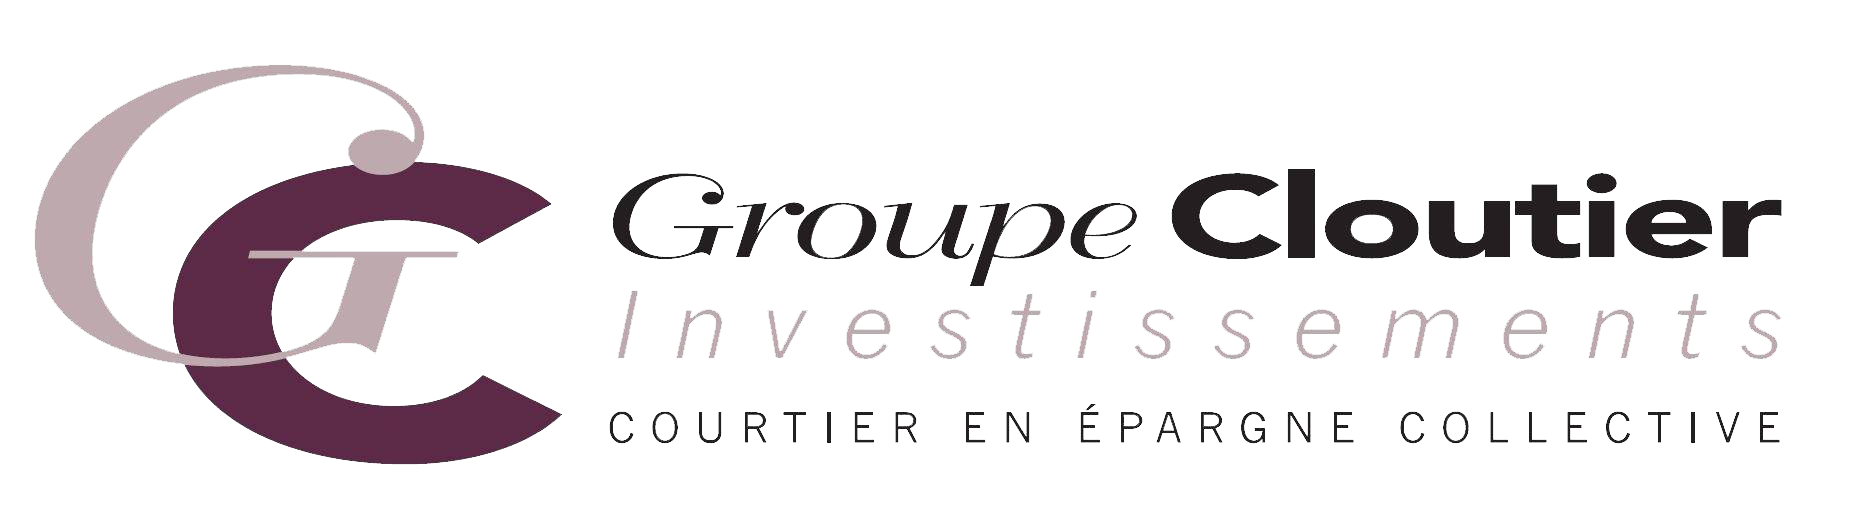 Groupe Cloutier investissements